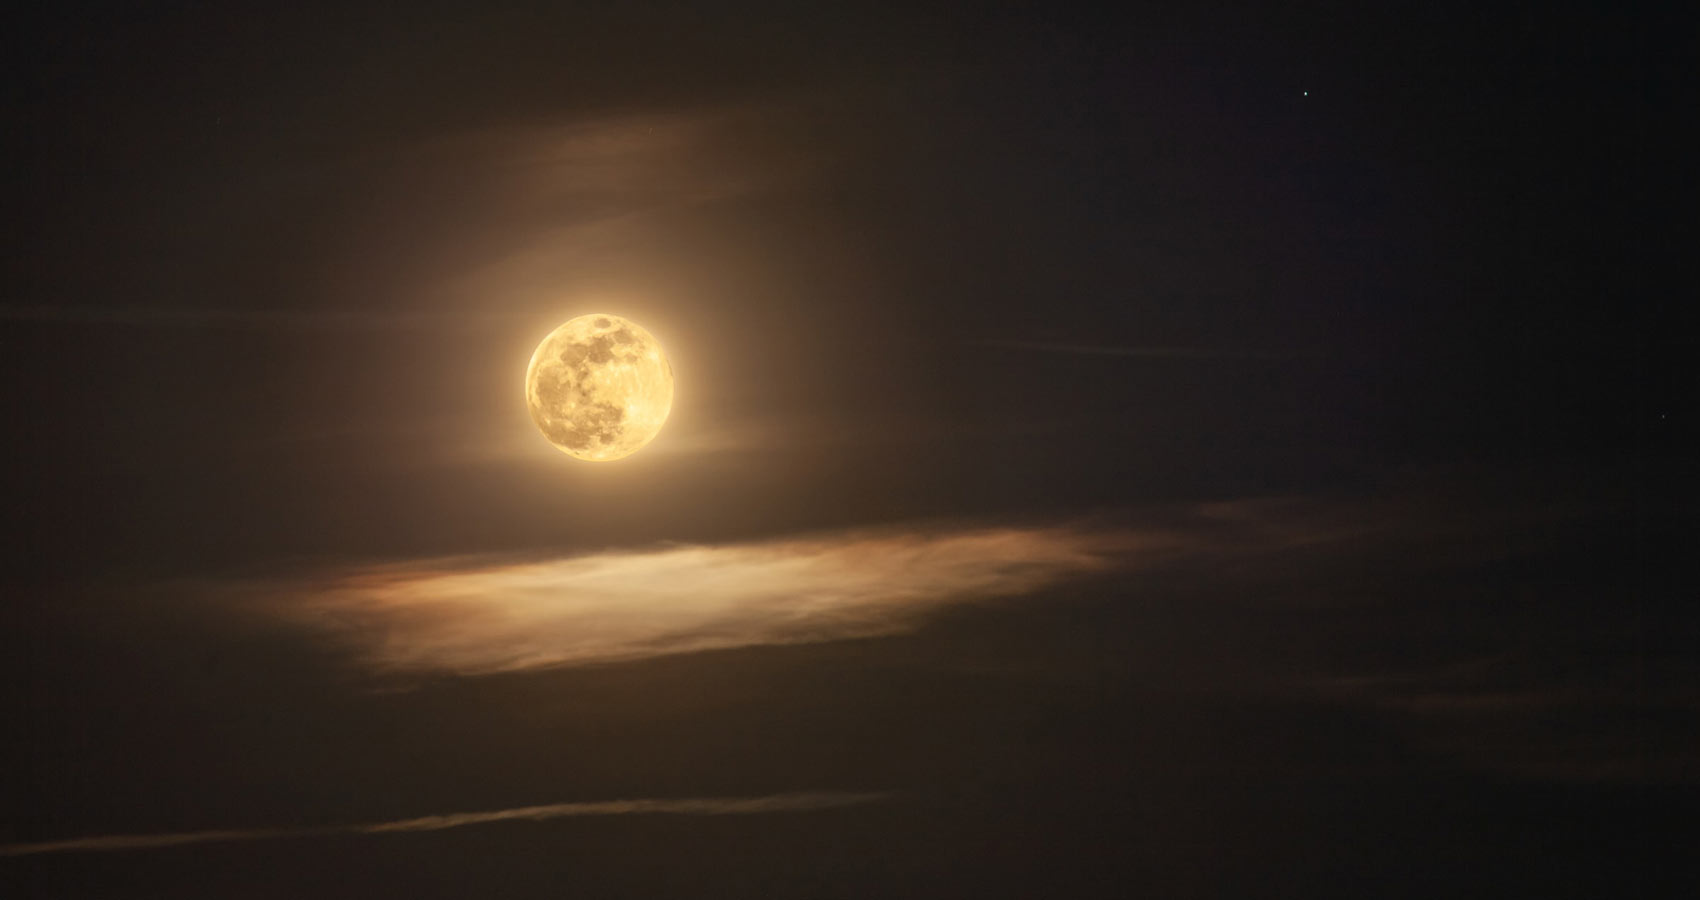 A Night Thought, a poem by William Wordsworth at Spillwords.com